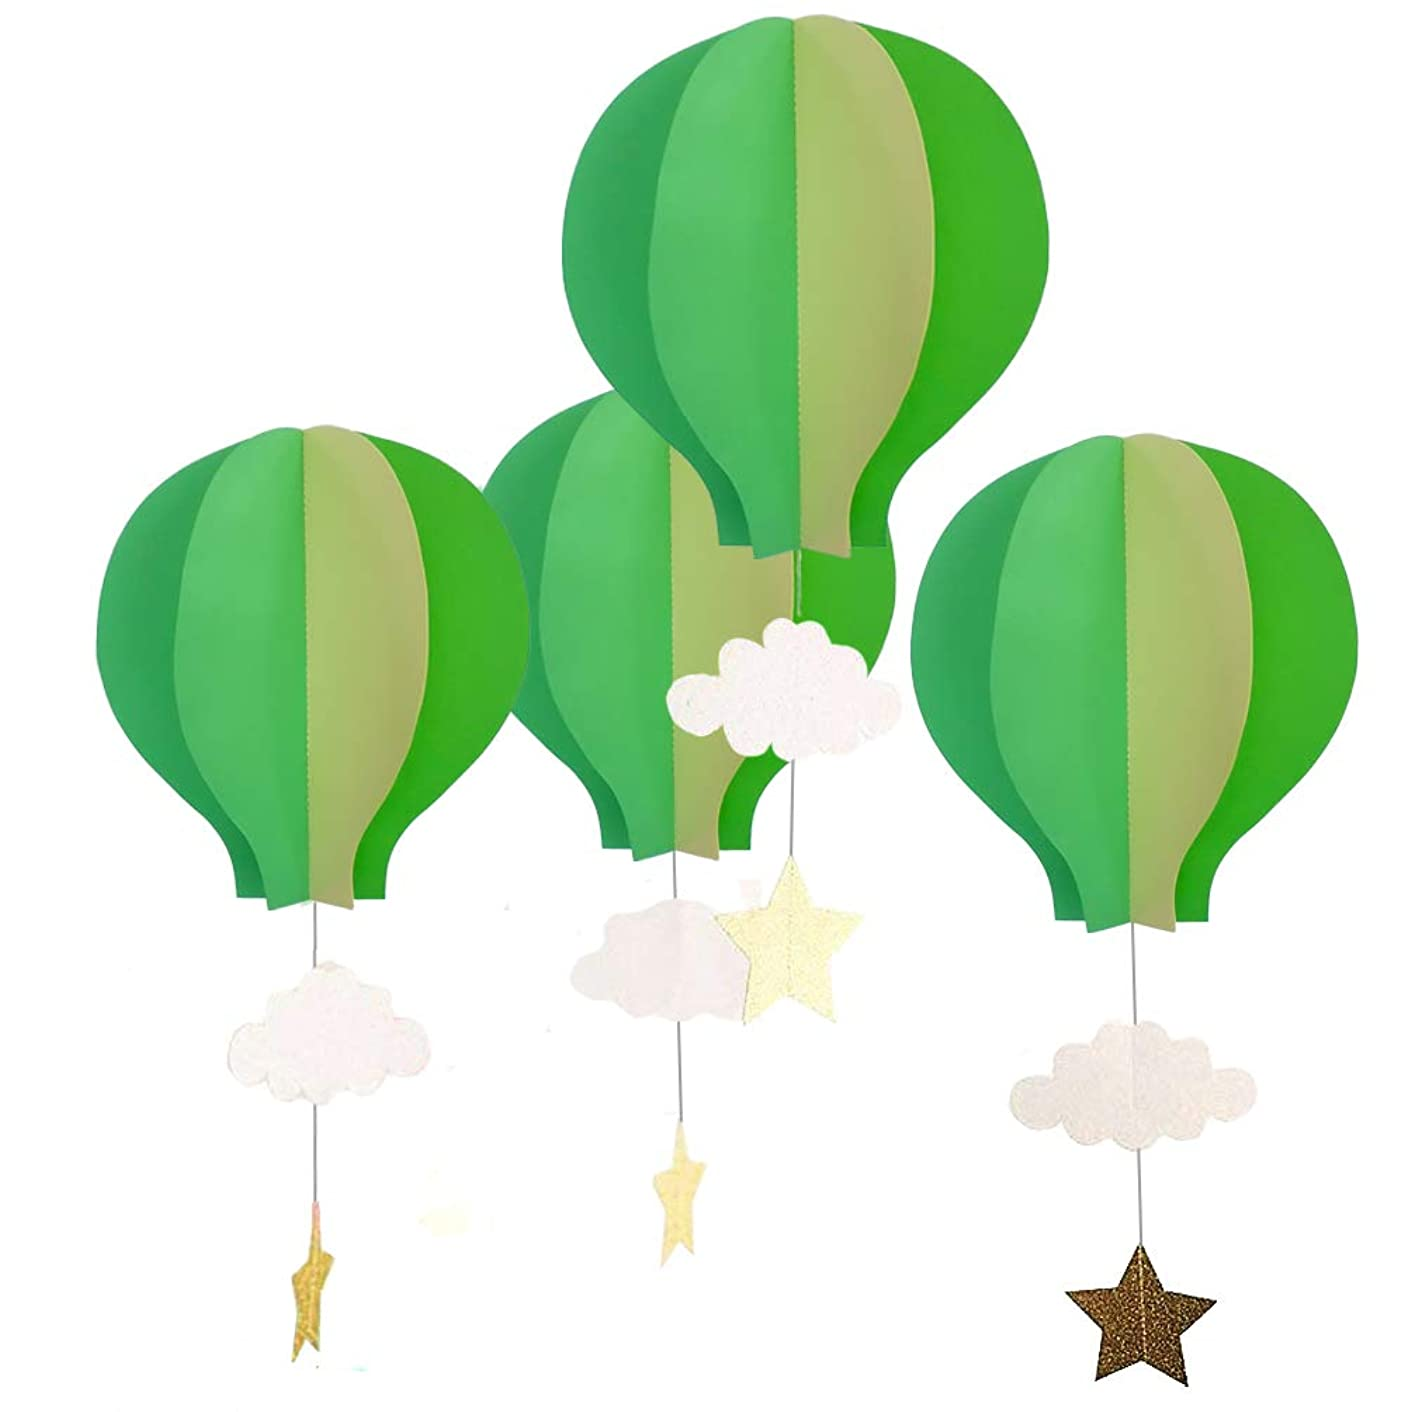 8 Pcs Large Size Hot Air Balloon 3D Paper Garland Hanging Decorations for Wedding Baby Shower Valentine's Day Christmas Décor Birthday Party Supplies by AZOWA (Green Yellow)